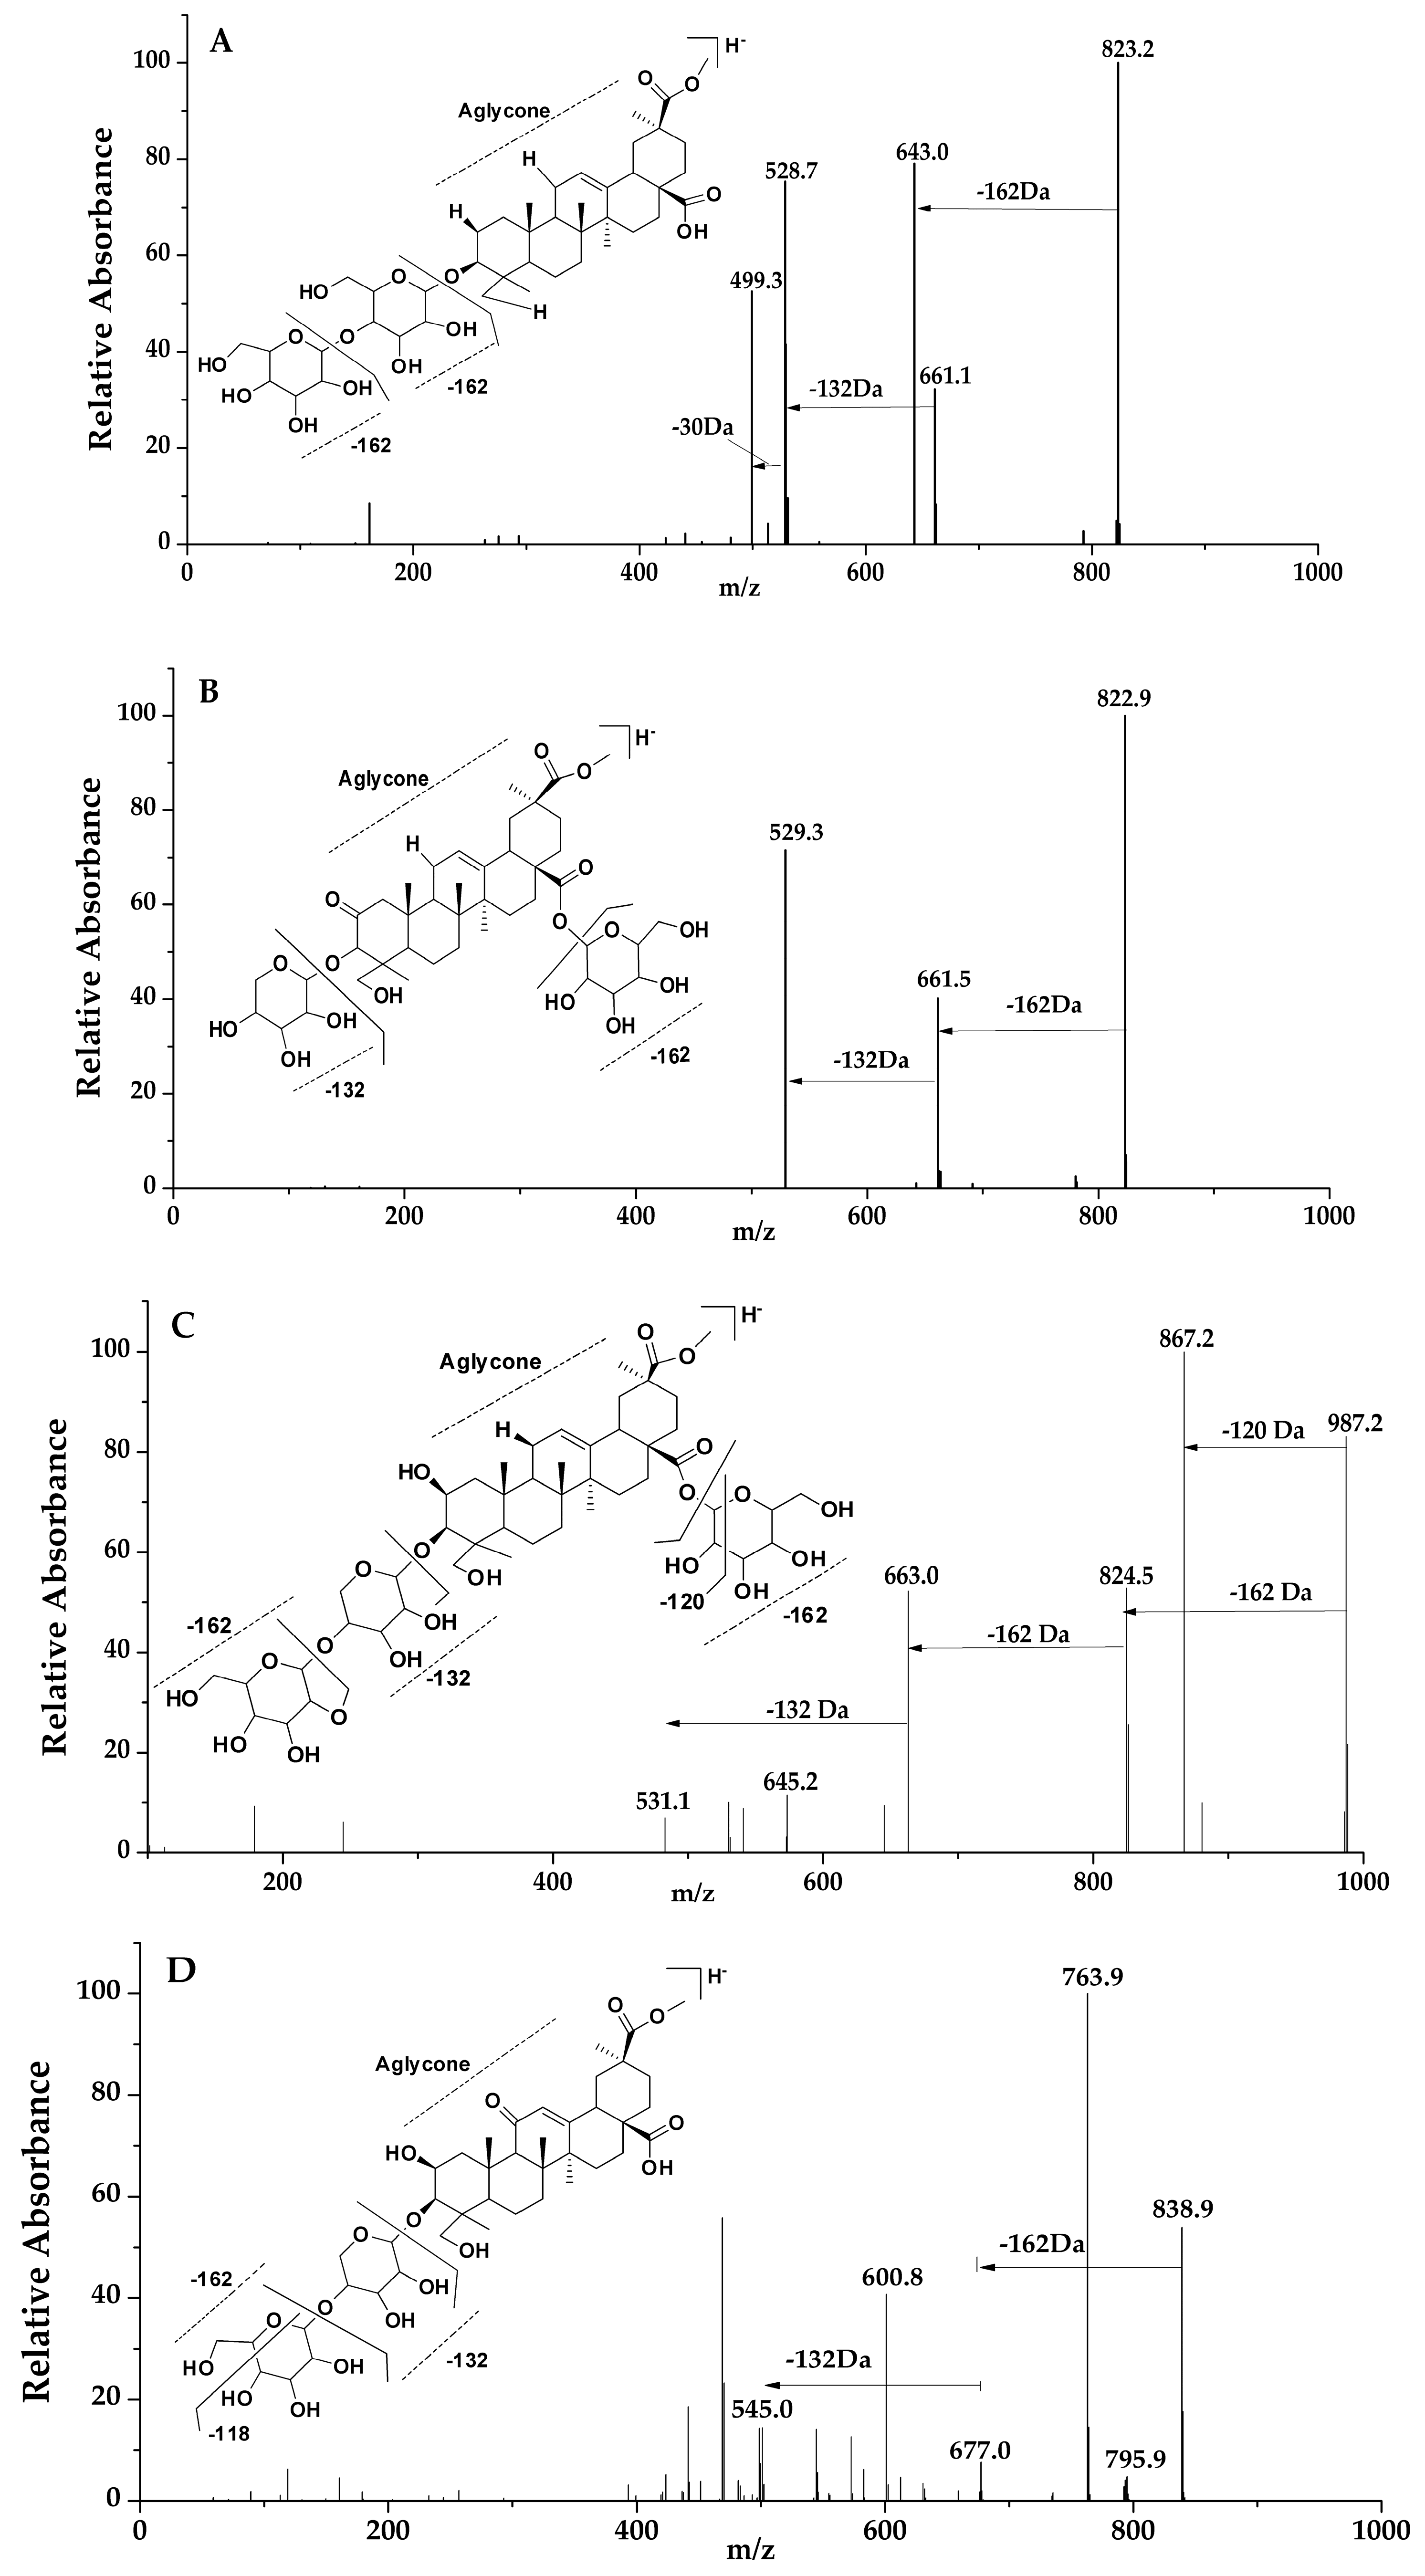 Molecules | Free Full-Text | Comparative Analysis of Saponins from